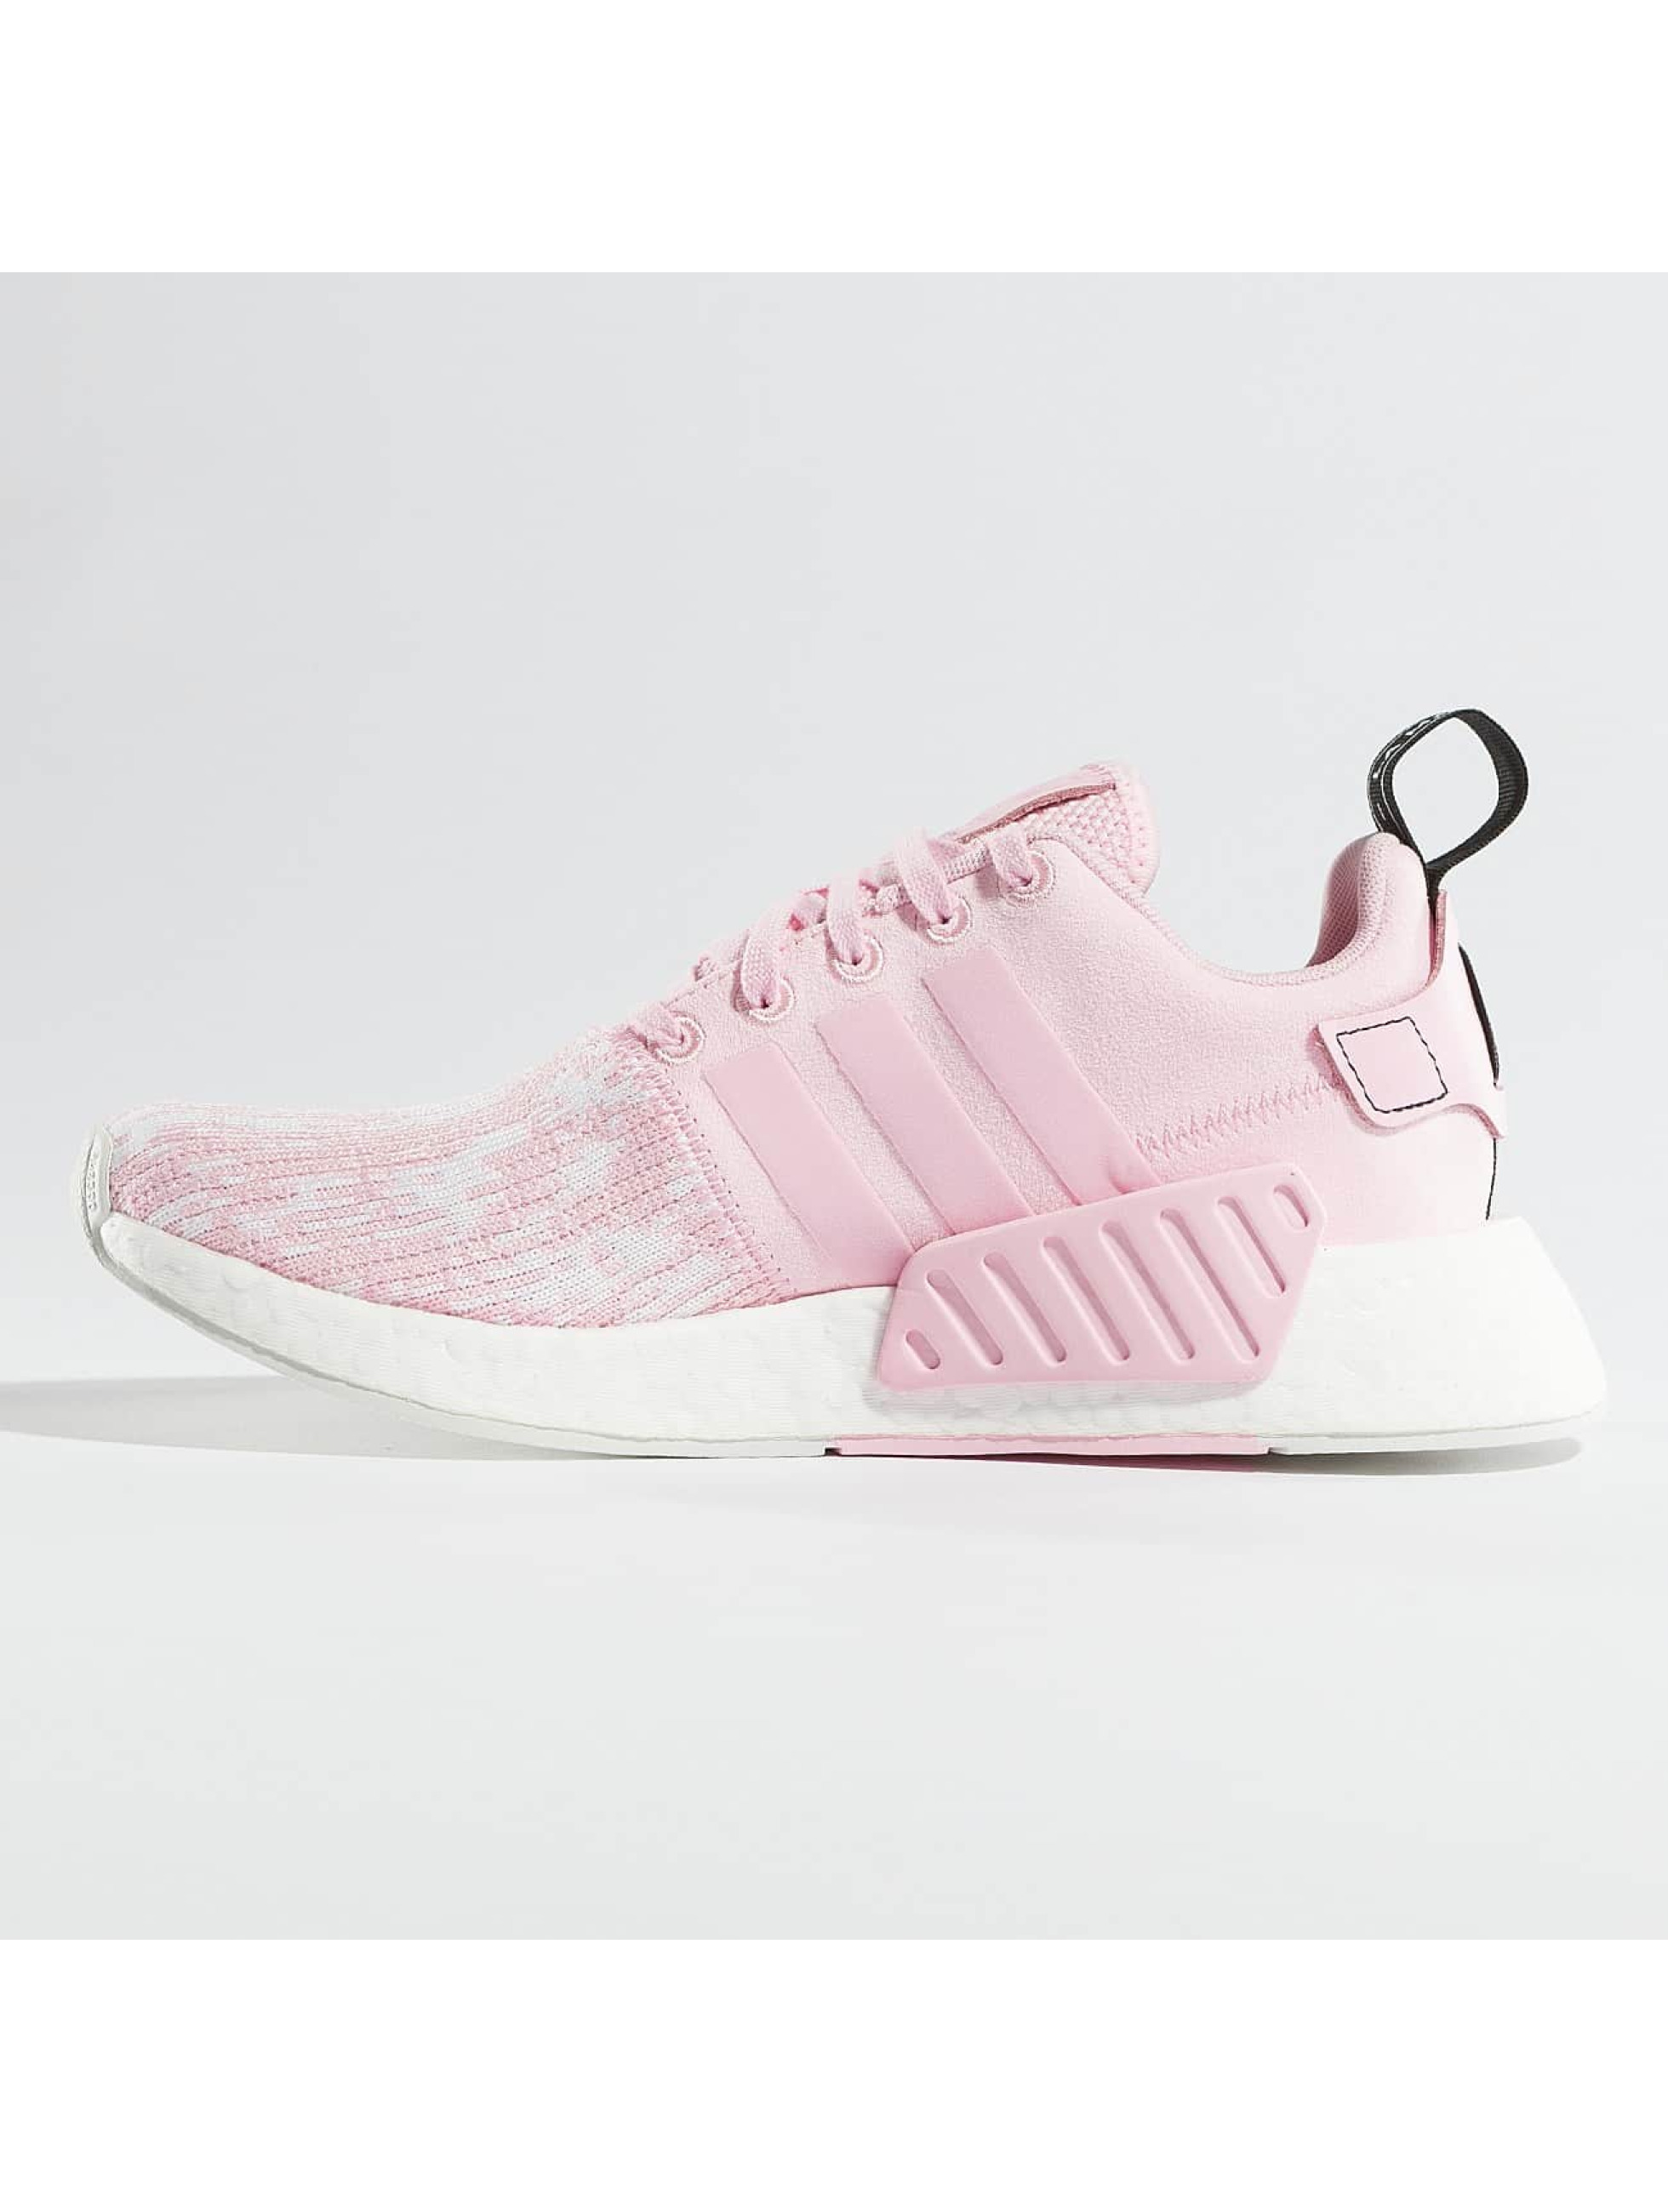 adidas originals damen sneaker nmd r2 w in rosa 367970. Black Bedroom Furniture Sets. Home Design Ideas